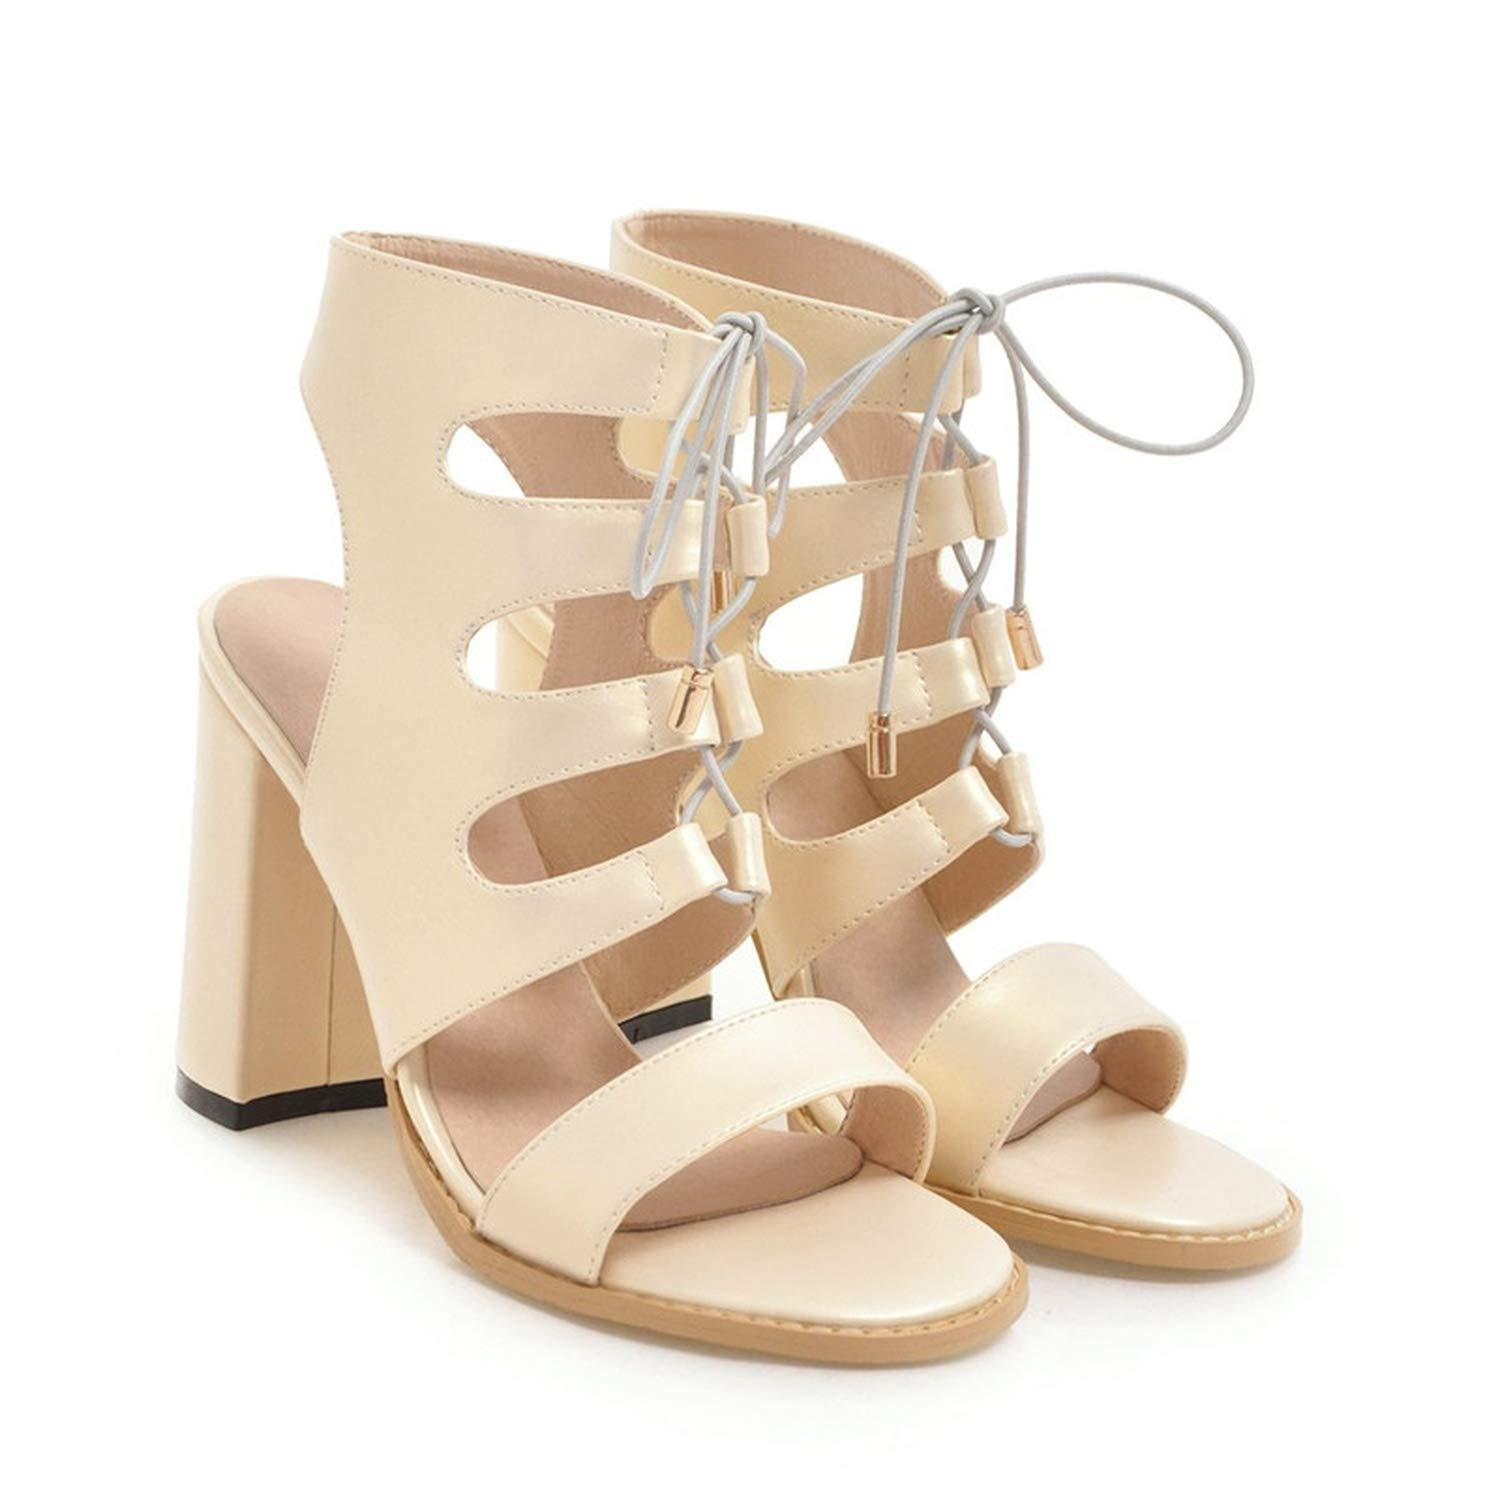 gold Gladiator High Heels Sandals Summer shoes Ankle Strap Peep Toe gold Silver Party Office shoes